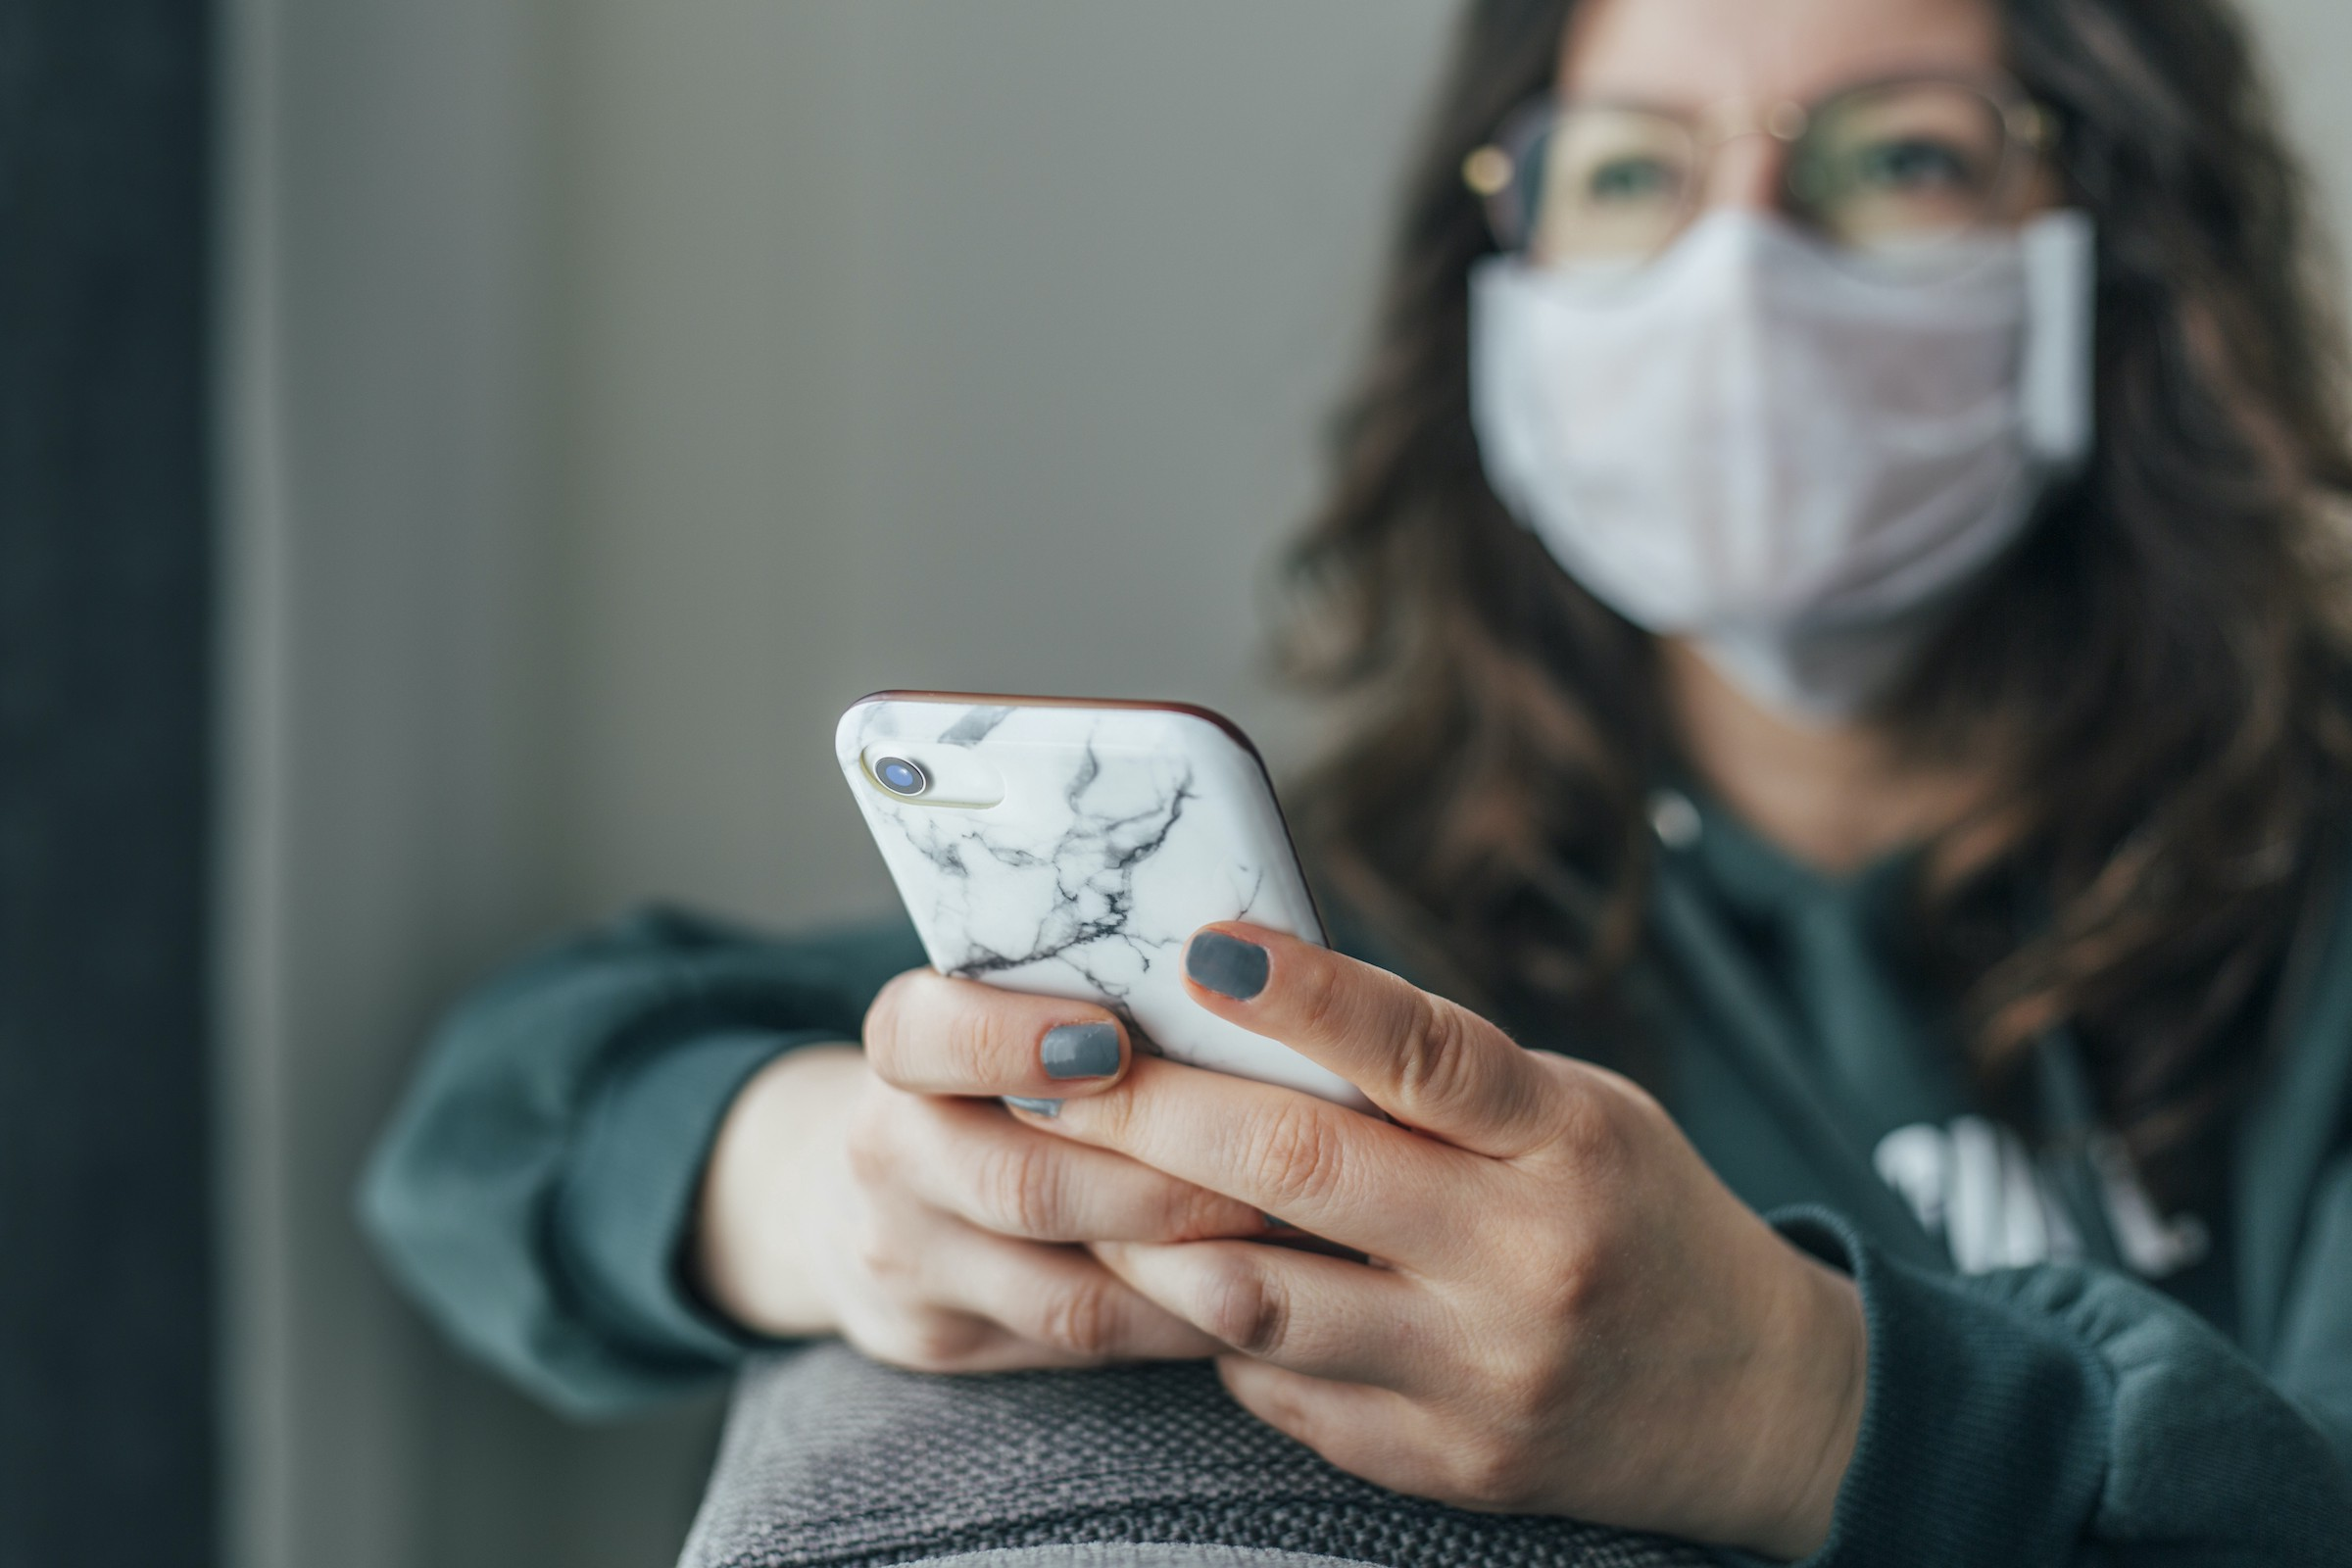 A person wearing a face mask, using their phone. They seem to have an optimistic expression.